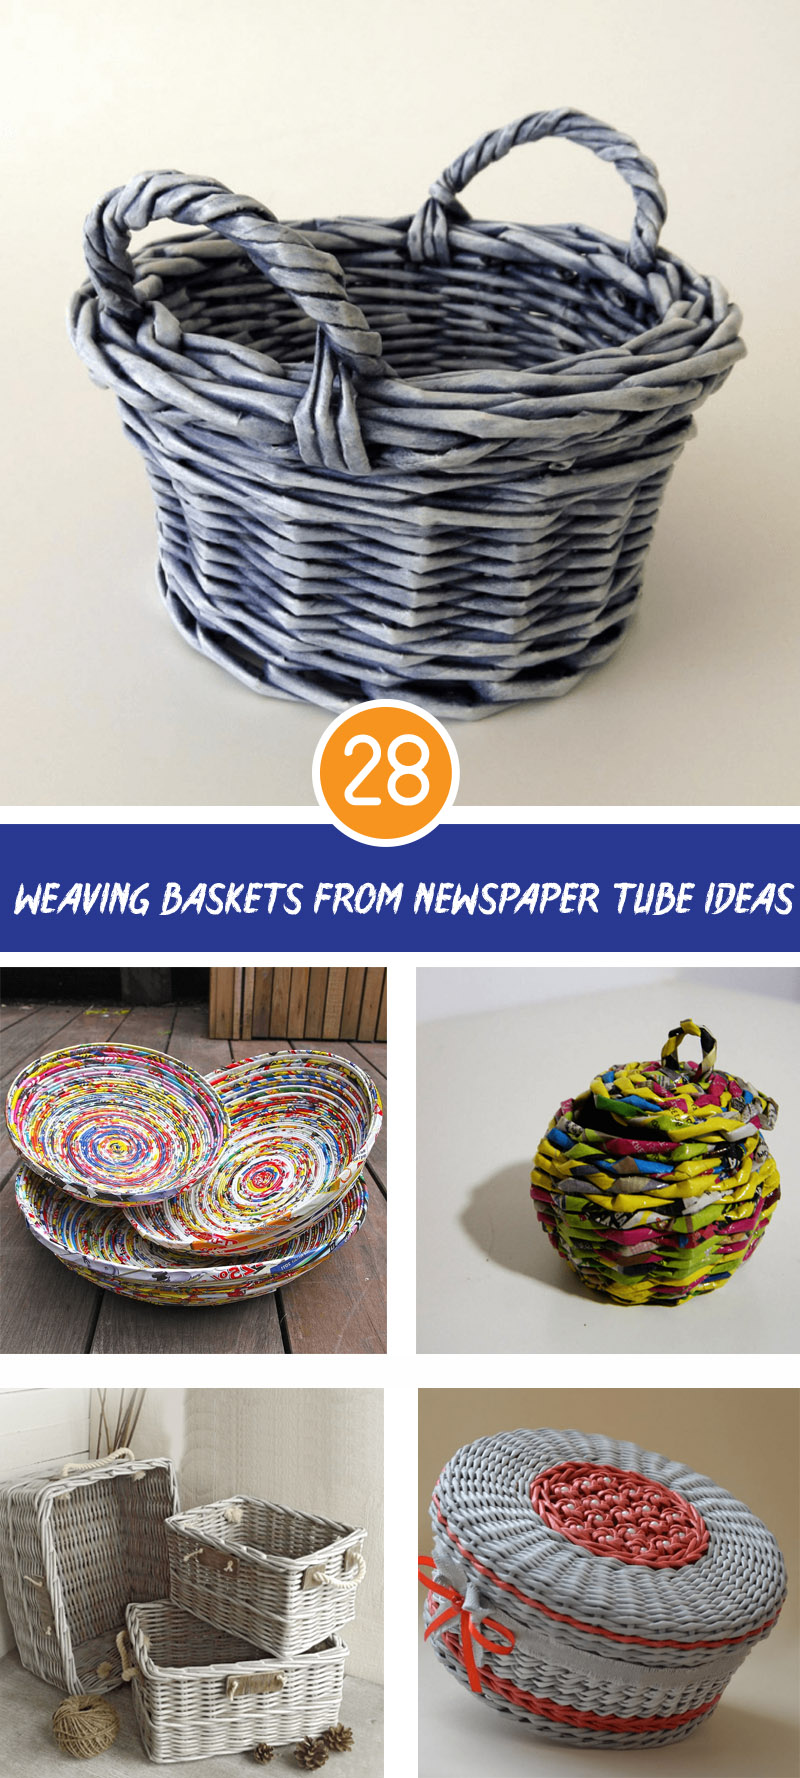 weaving baskets from newspaper tube ideas